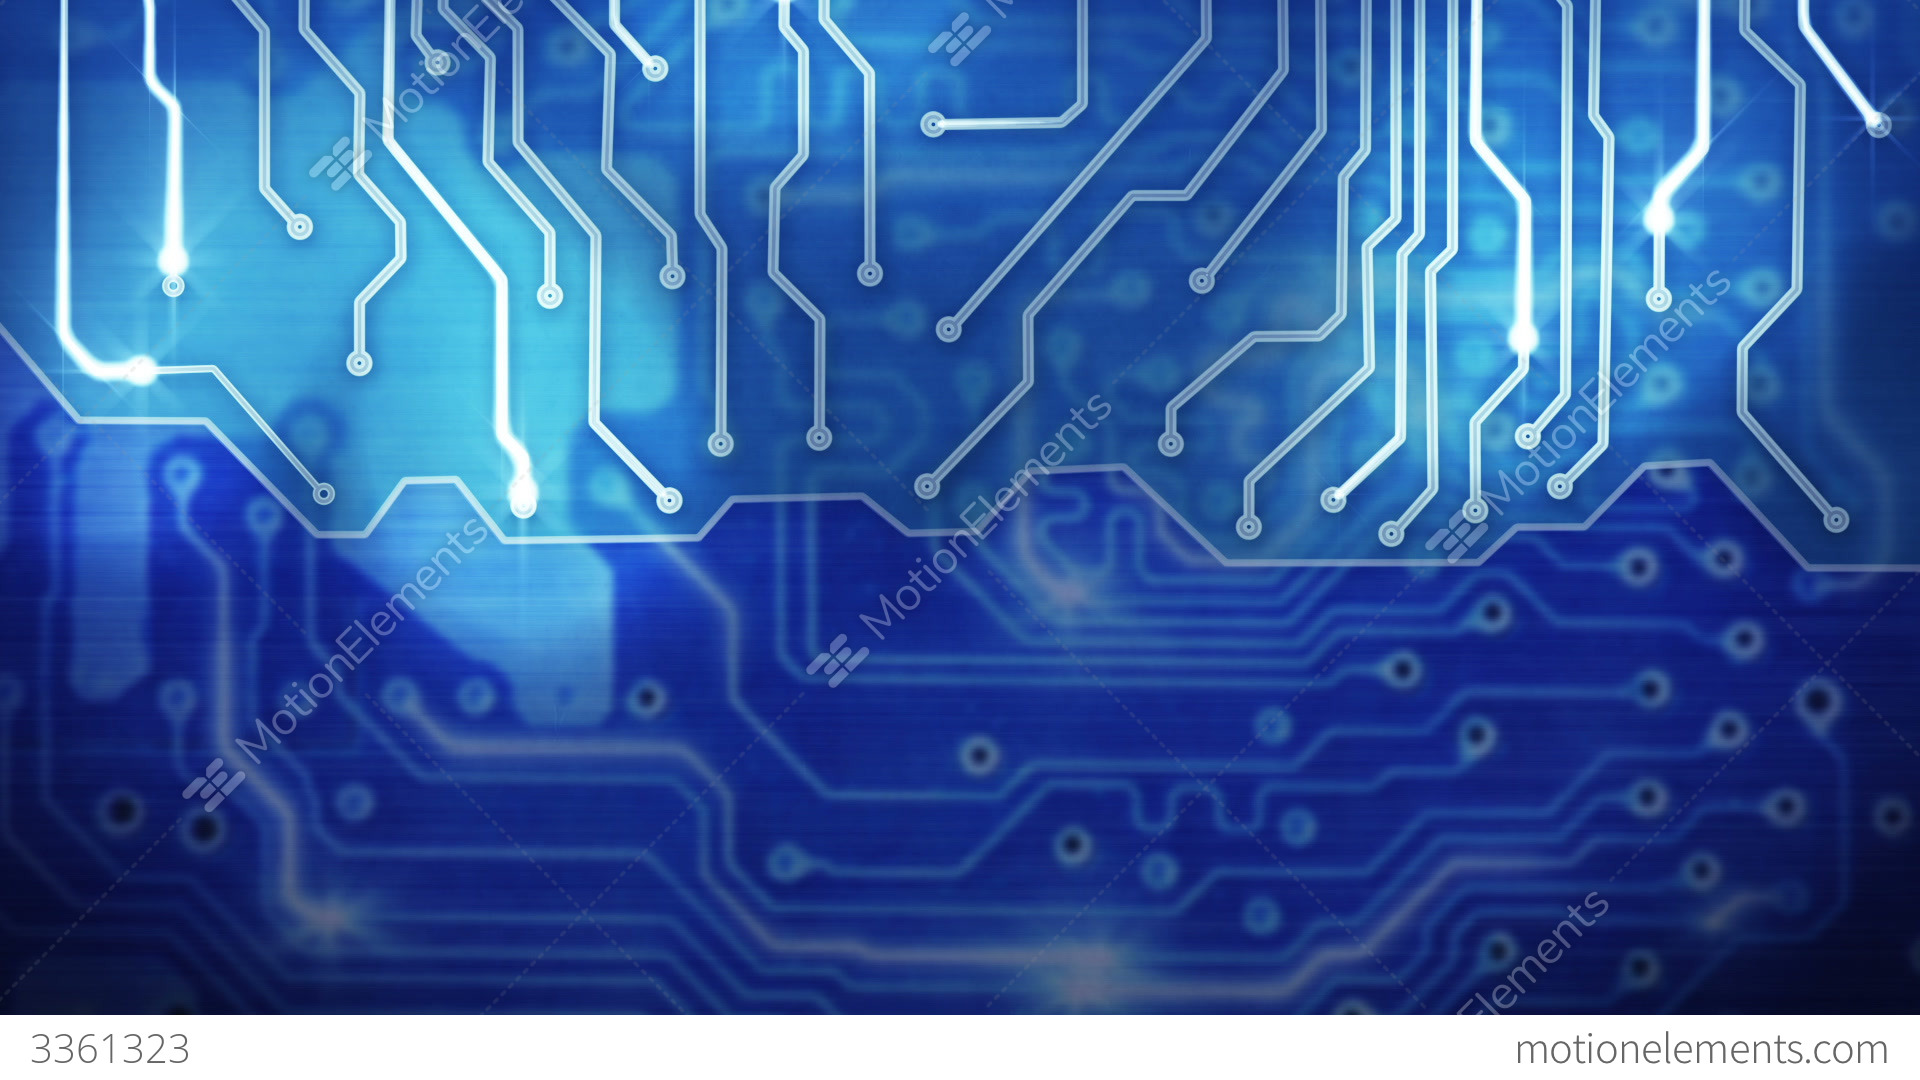 Blue Computer Circuit Board Loop Background Stock Animation | 3361323